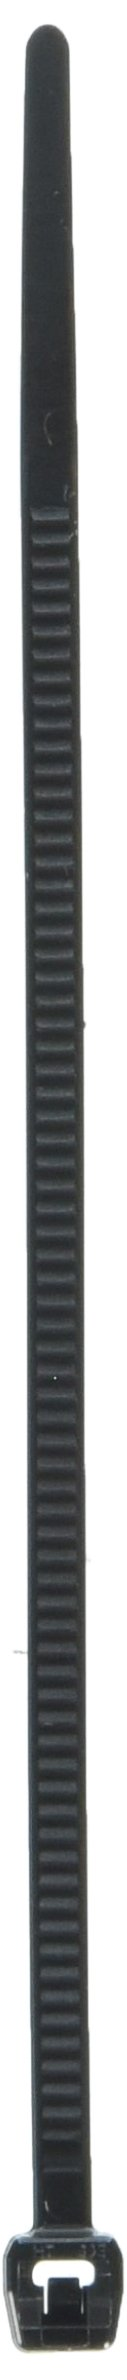 Hellermann Tyton 118-04700 Outside Serrated Cable Tie, 4'' Long, 18lb Tensile Strength, PA66HS, Black  (Pack of 100)